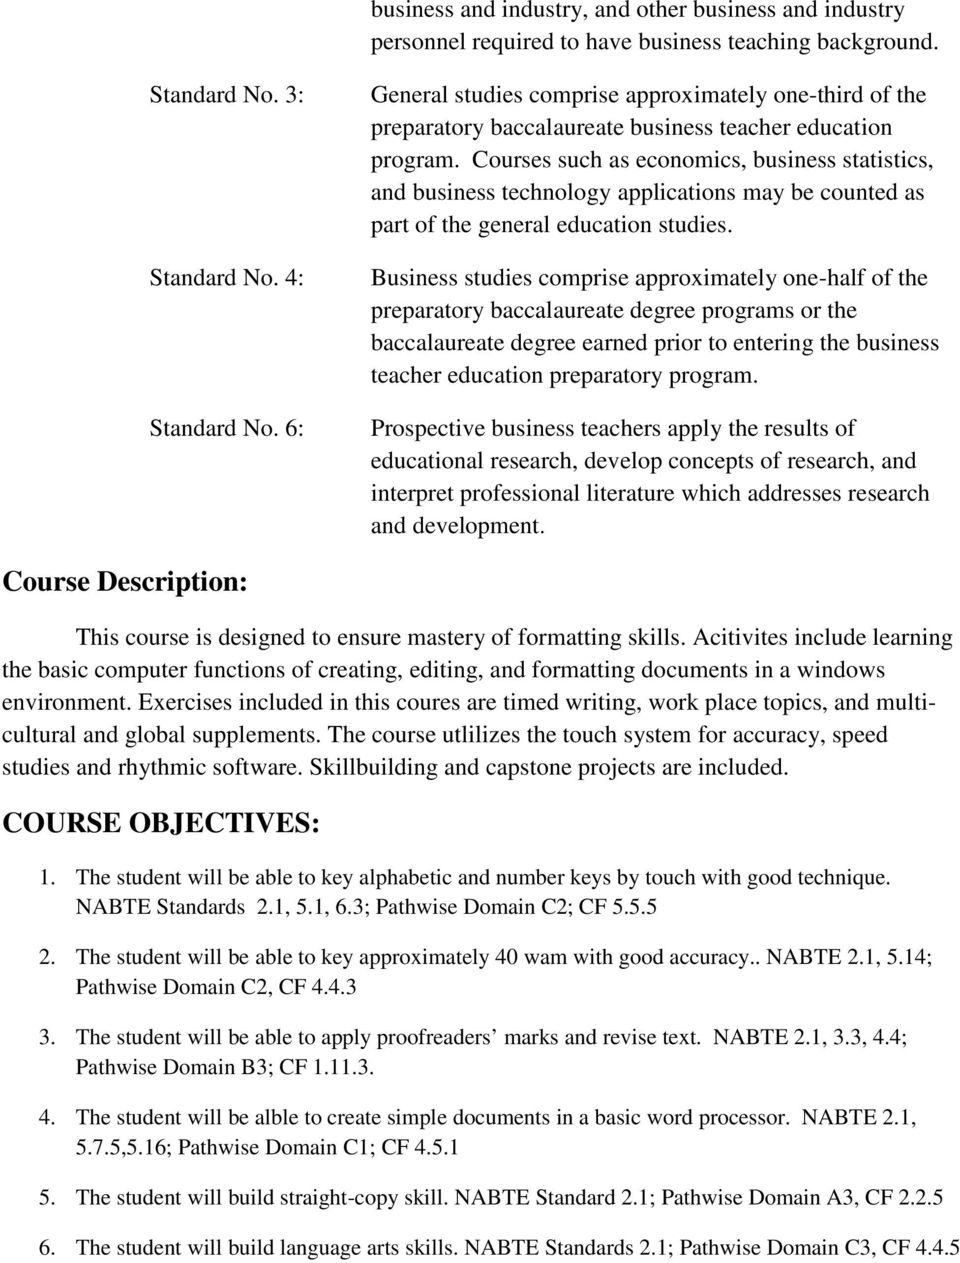 smith school of business resume template 28 images sle high